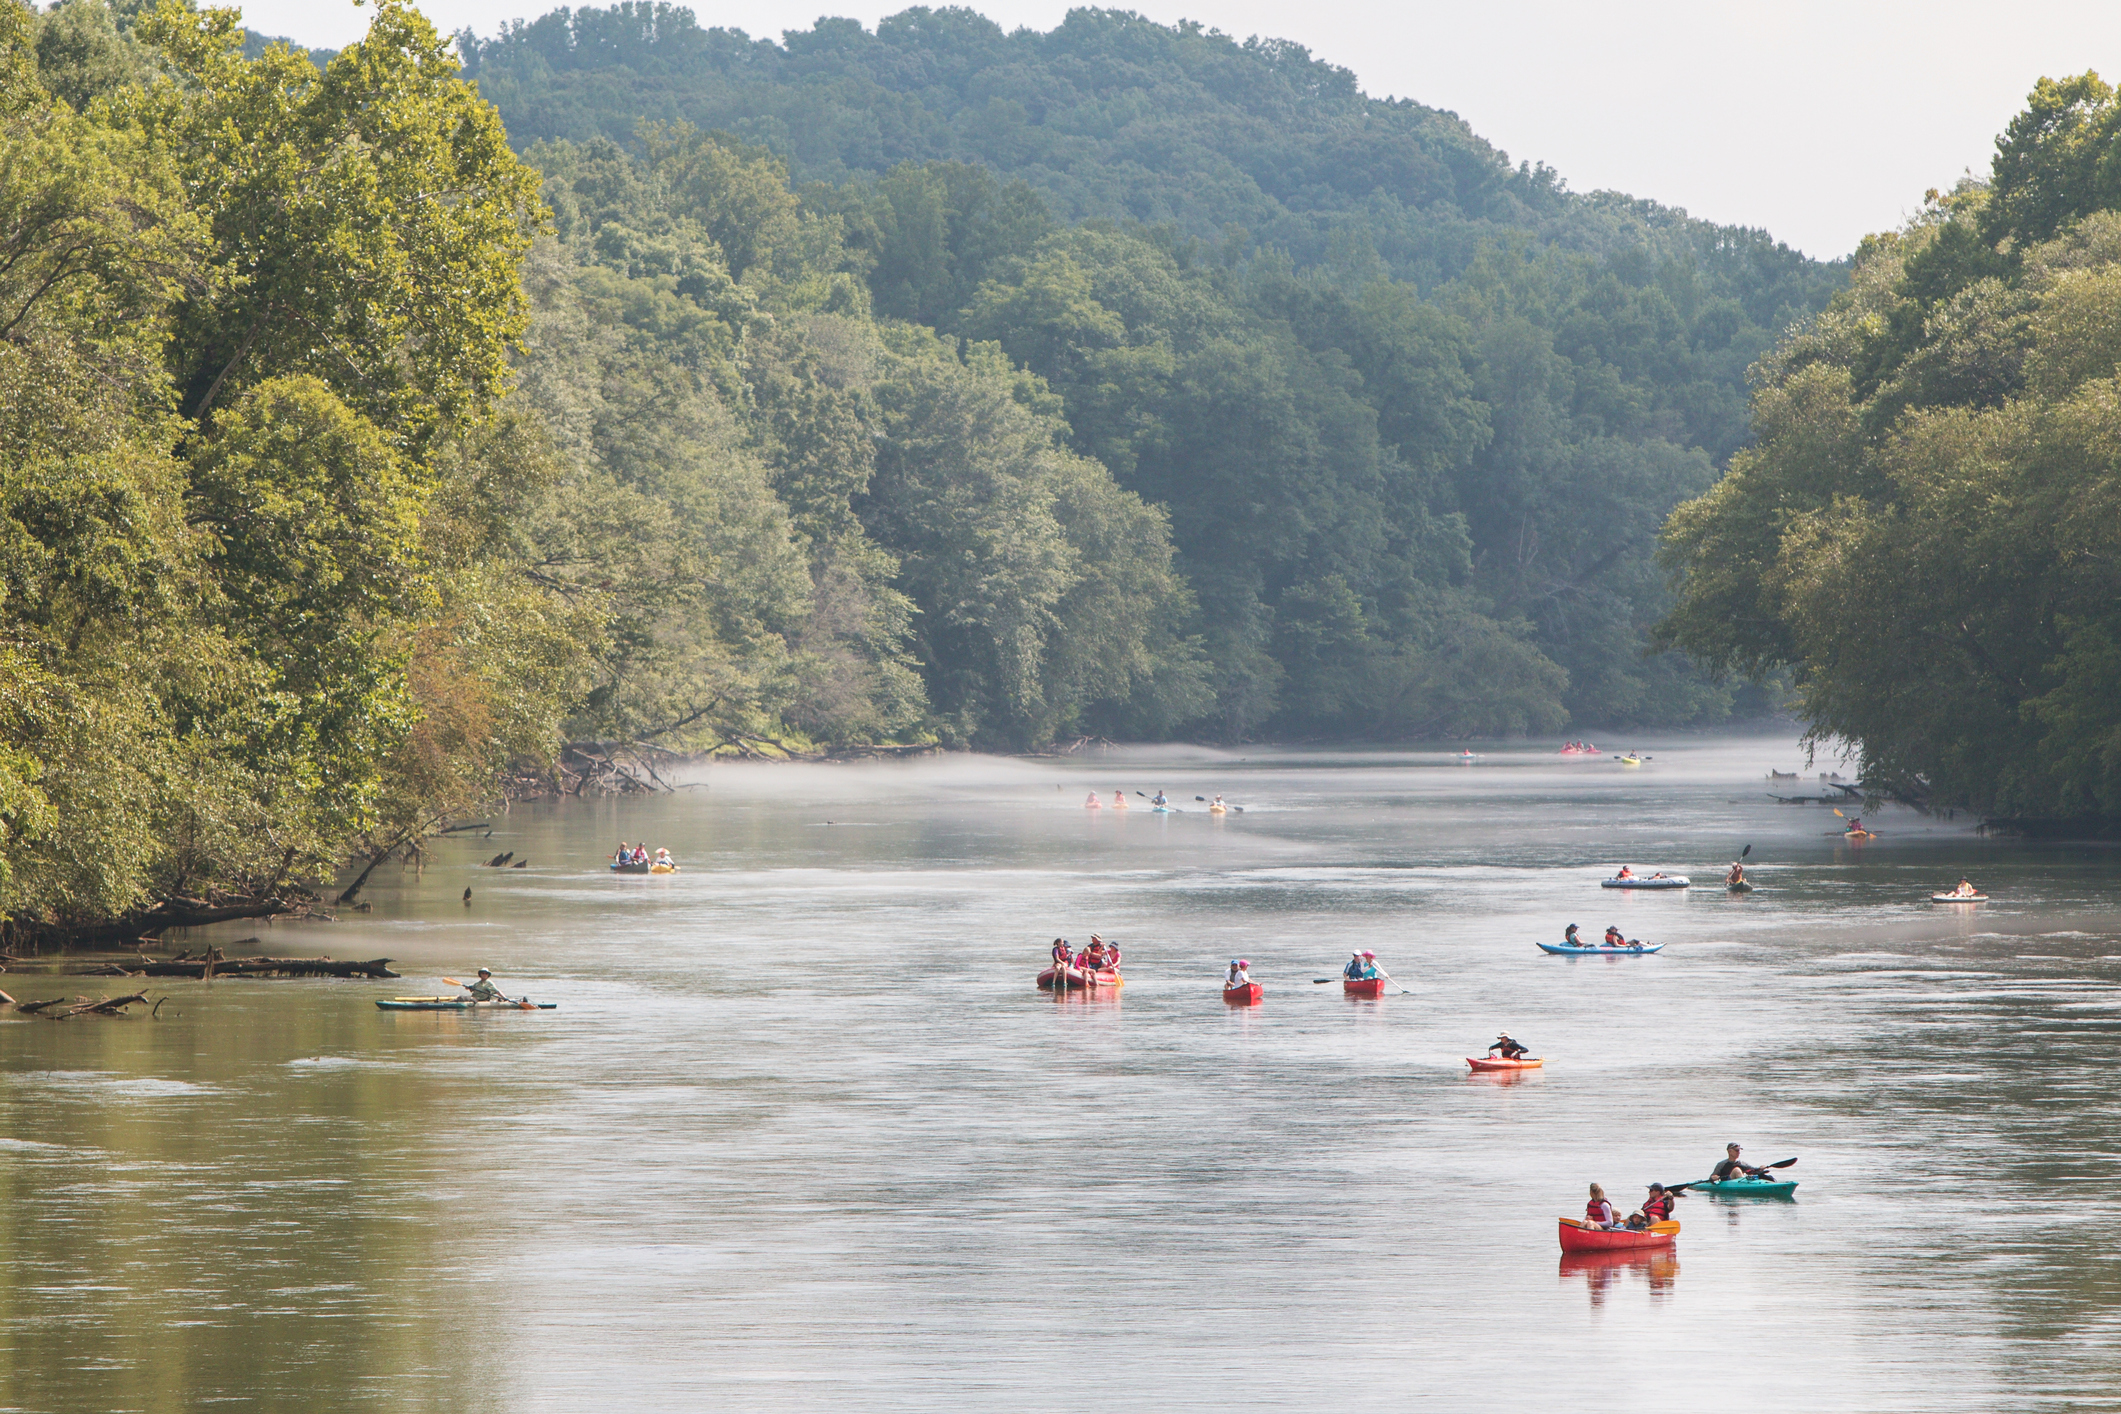 Kayak and rafts on a mellow river.